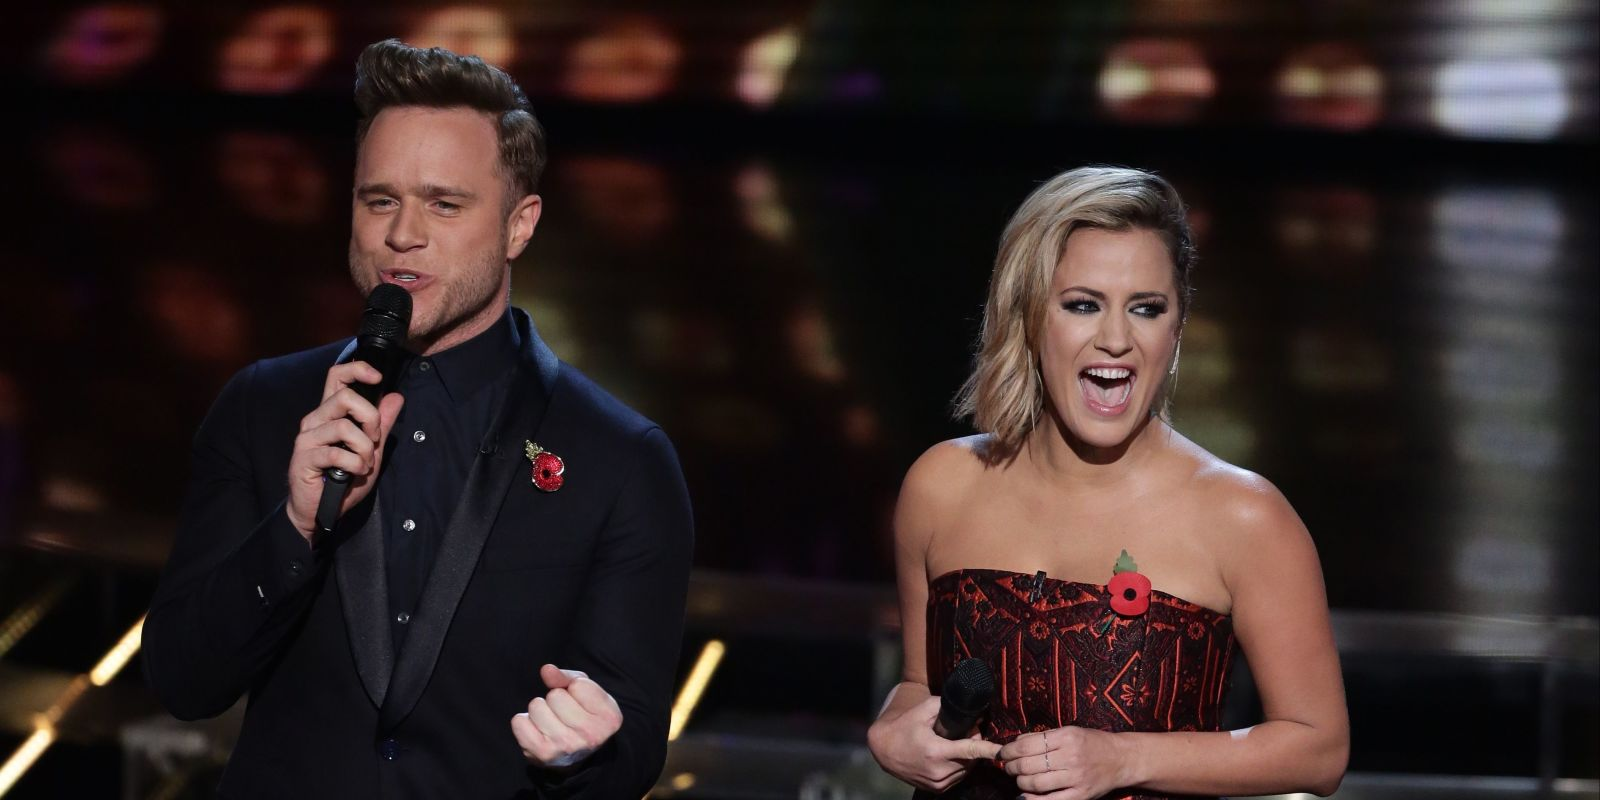 Olly murs black t shirt x factor - Former X Factor Presenter Caroline Flack Opens Up About Being Axed By Simon Cowell